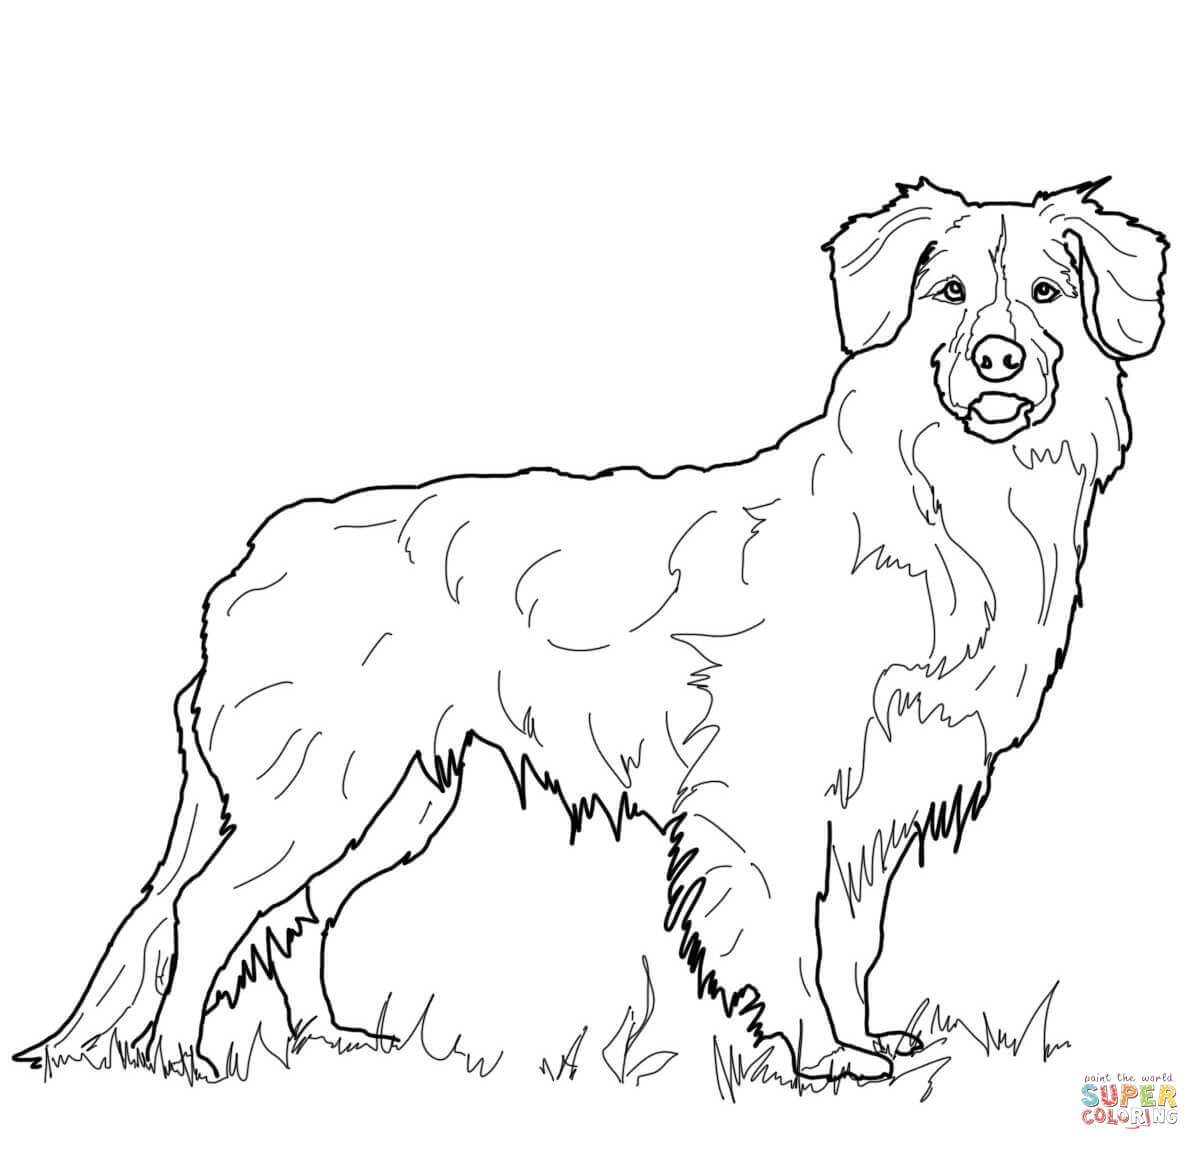 golden retriever line drawing at getdrawings com free for personal